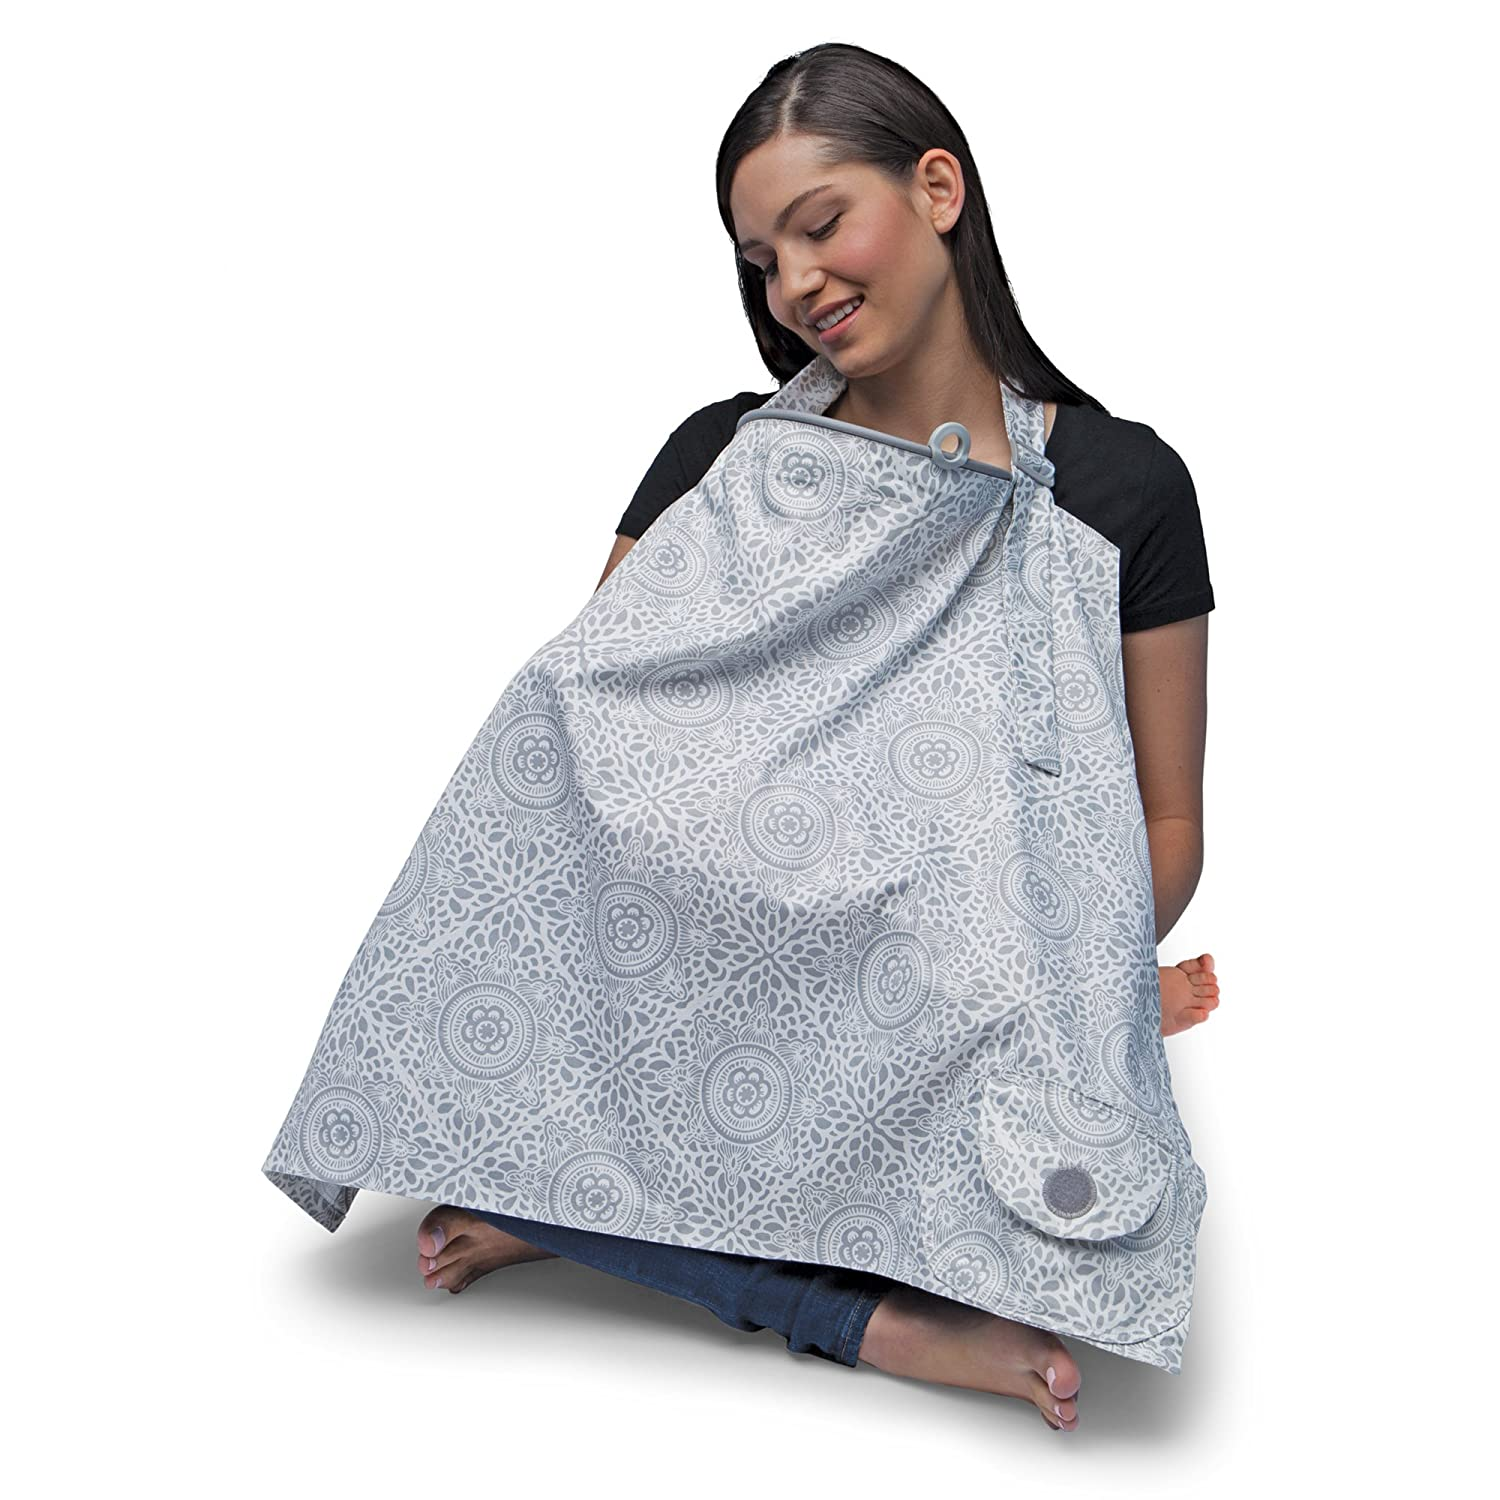 Boppy Nursing Cover, Boho/Gray 5600109K 6PK